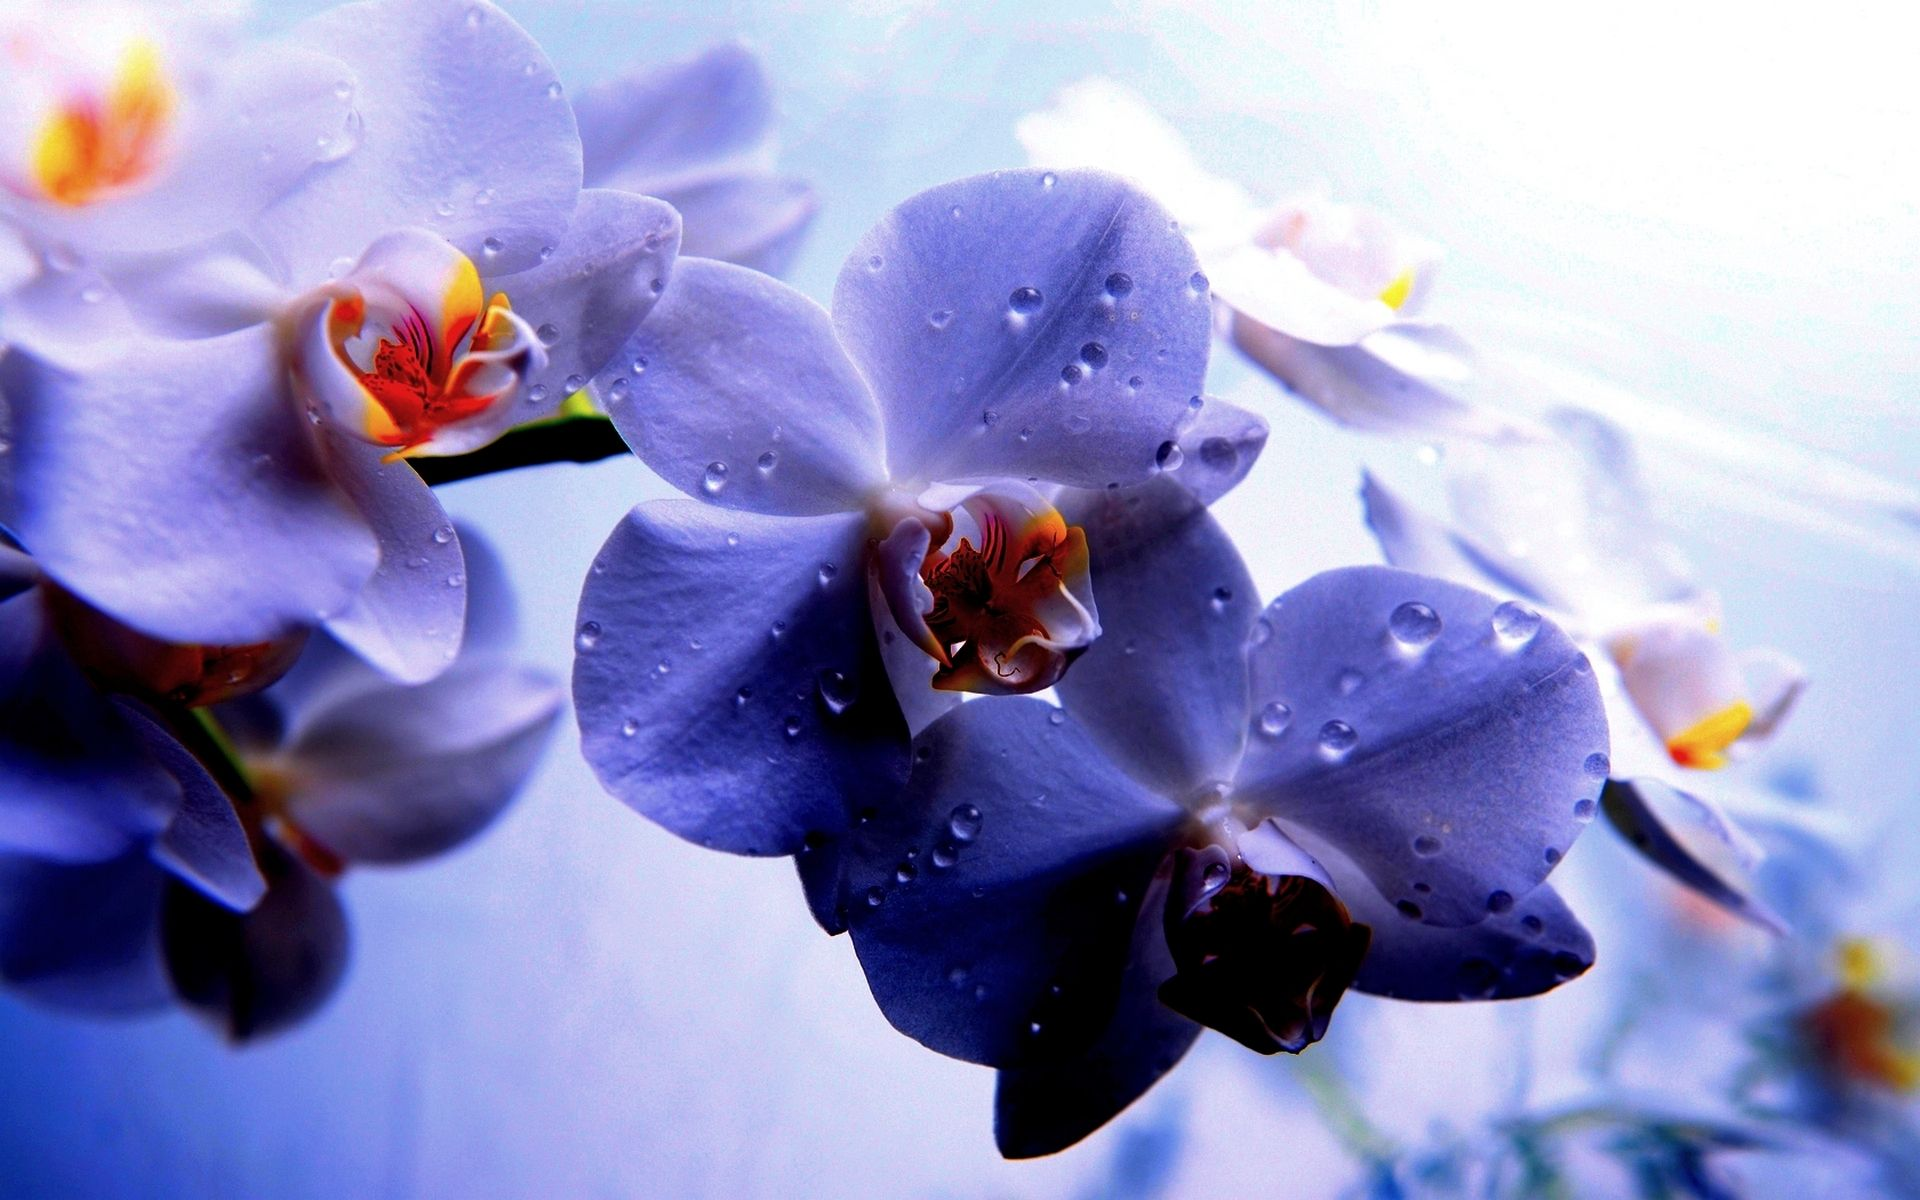 Orchid Wallpaper Google Paieska Orchid Wallpaper Orchid Photography Orchid Images